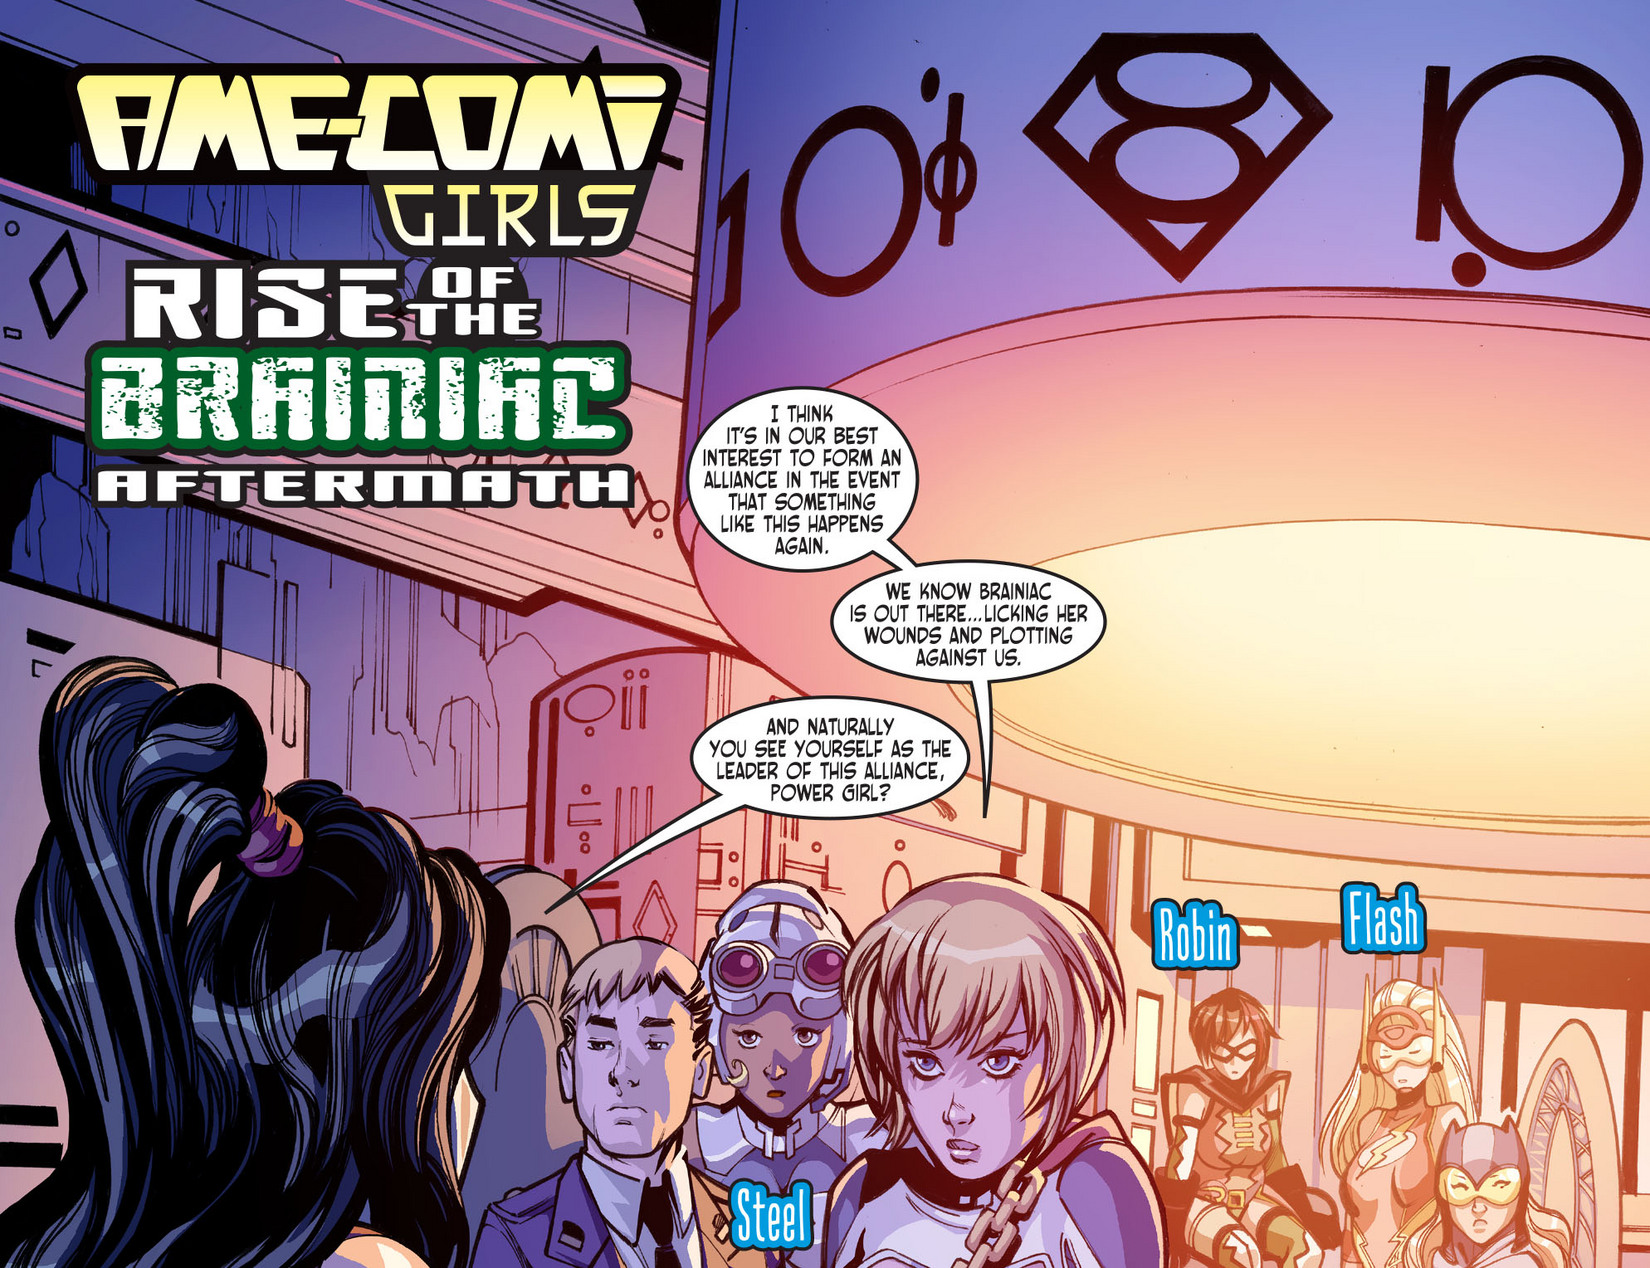 Read online Ame-Comi Girls comic -  Issue #6 - 3